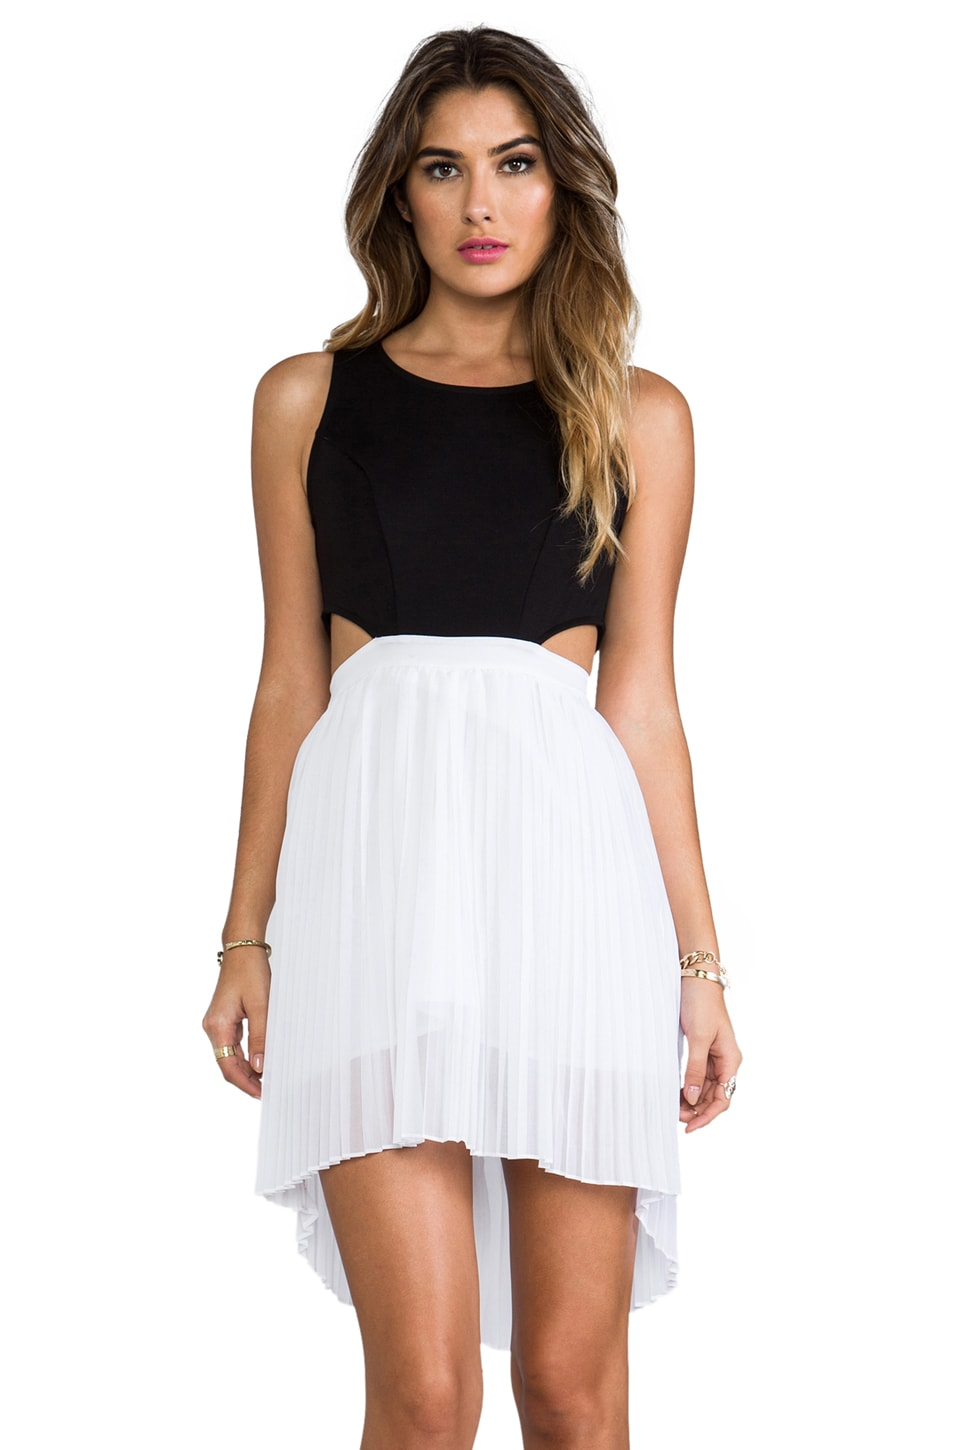 BB Dakota Jace Pleated Tank Dress in Black & White